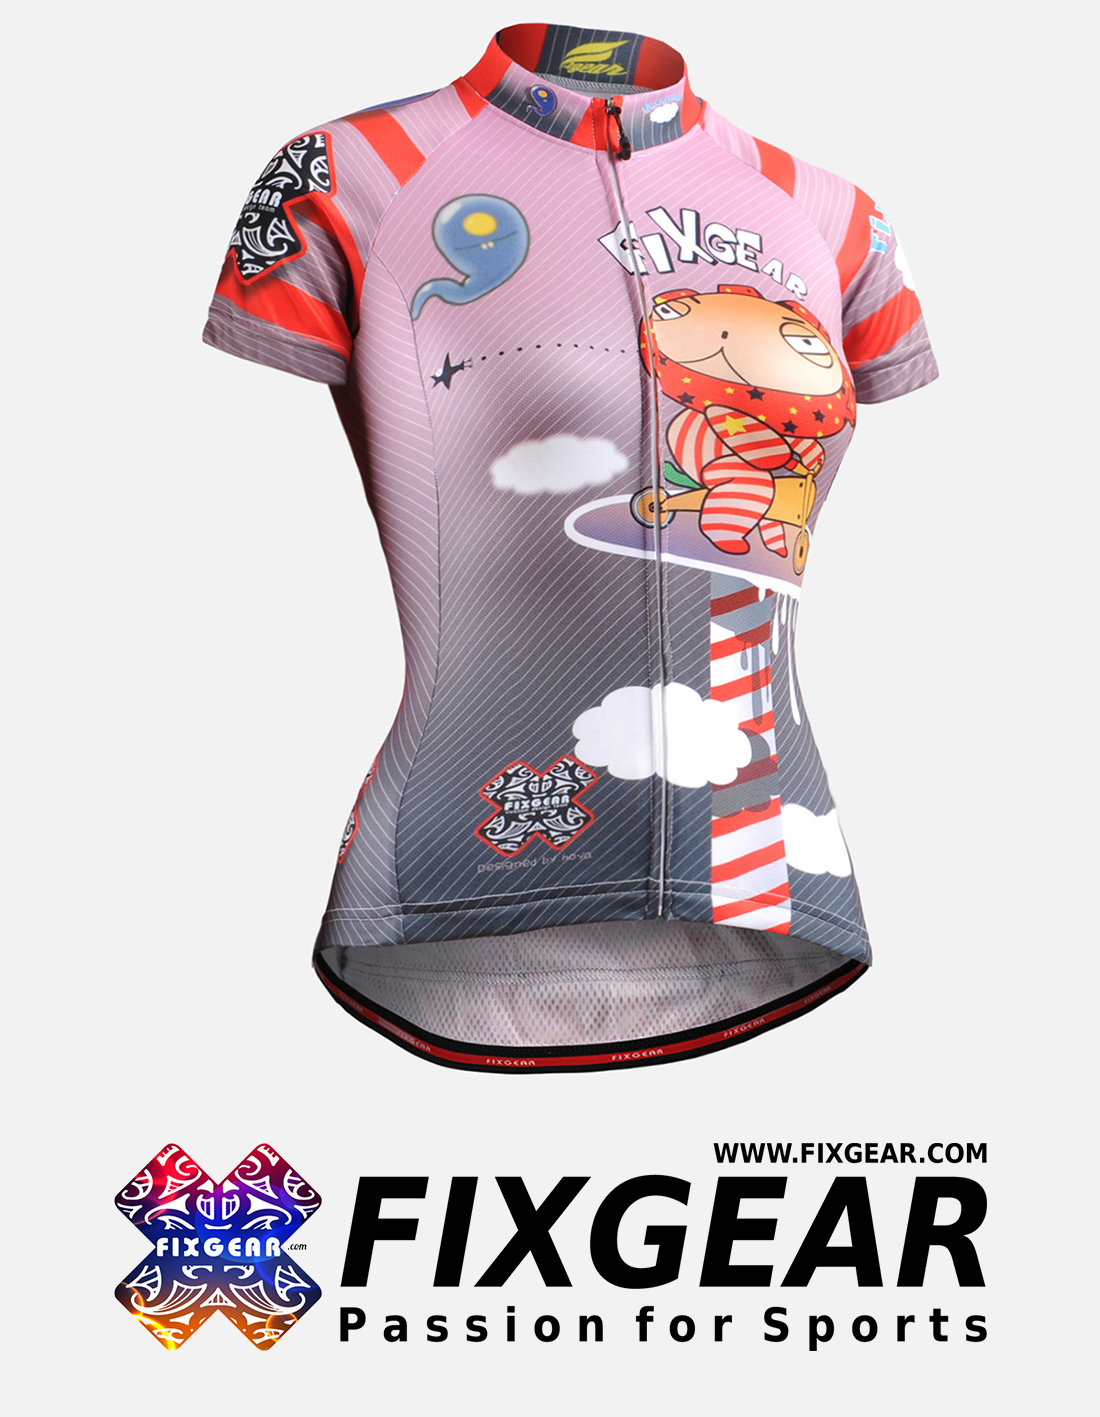 FIXGEAR CS-W1602 Women's Short Sleeve Jersey